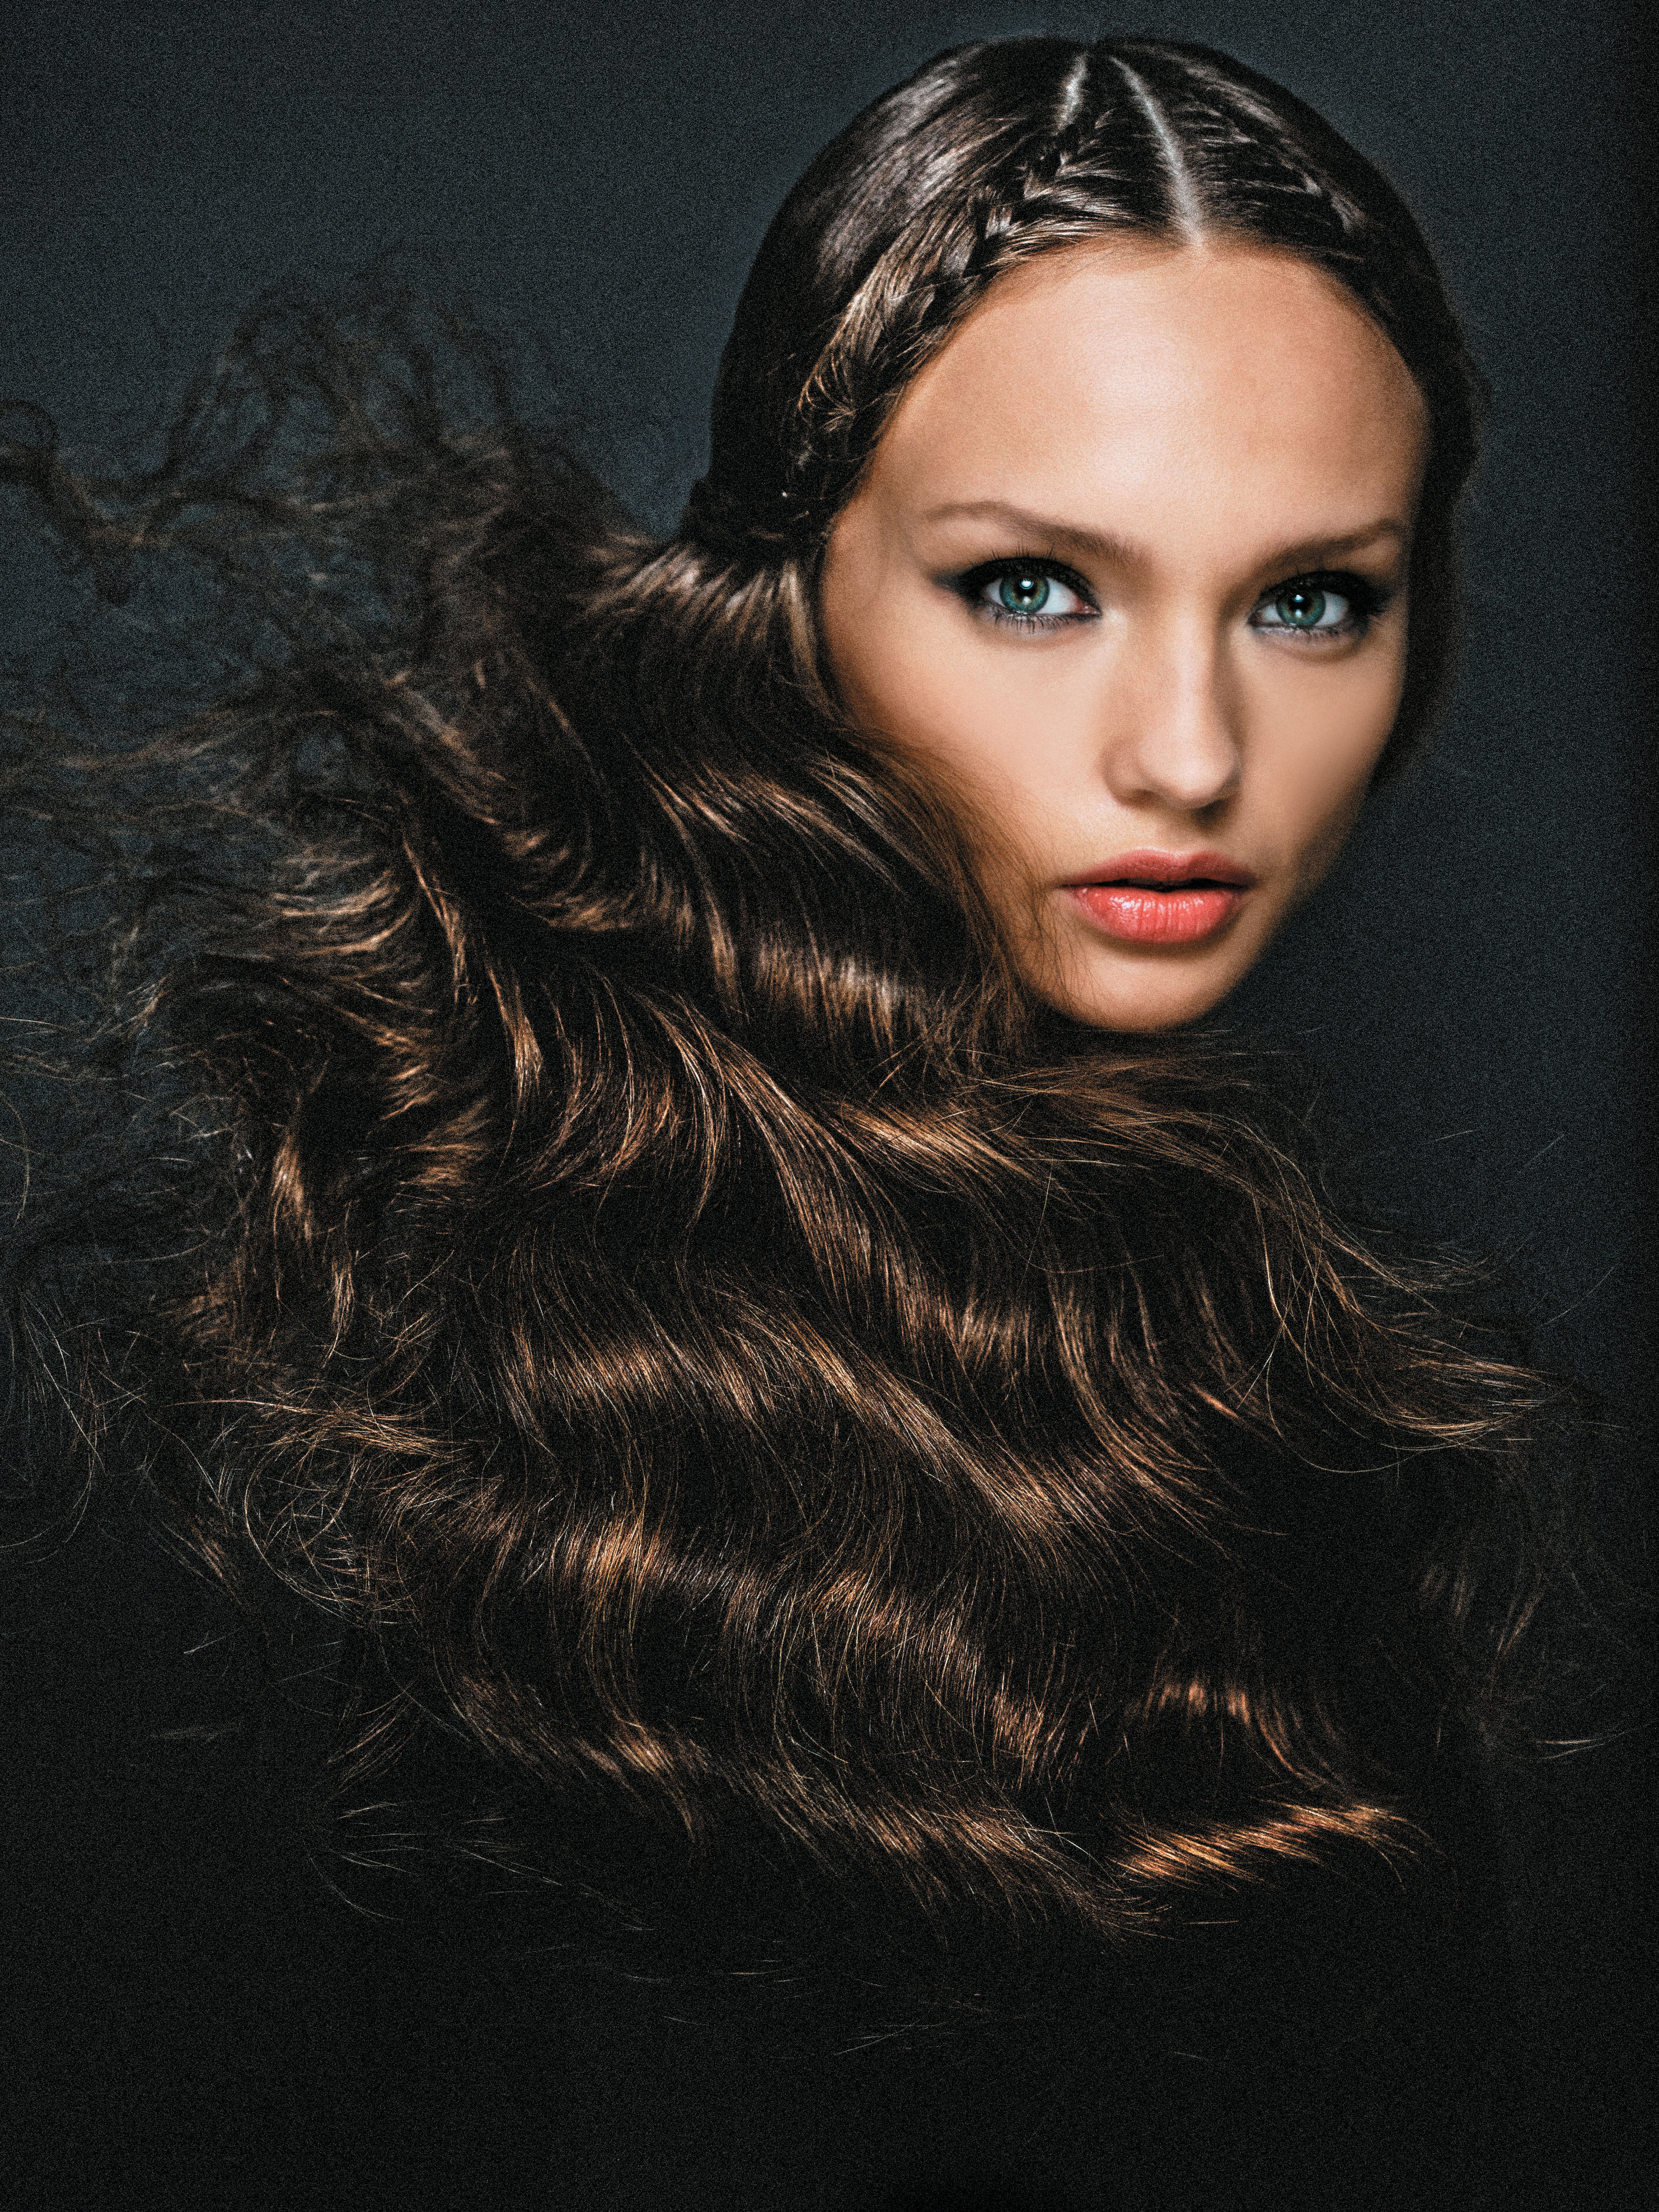 The magic of a twist, like a little Russian pillbox hat, made up of a braid that drops onto the forehead, heightens the intriguing character of this hairstyle.